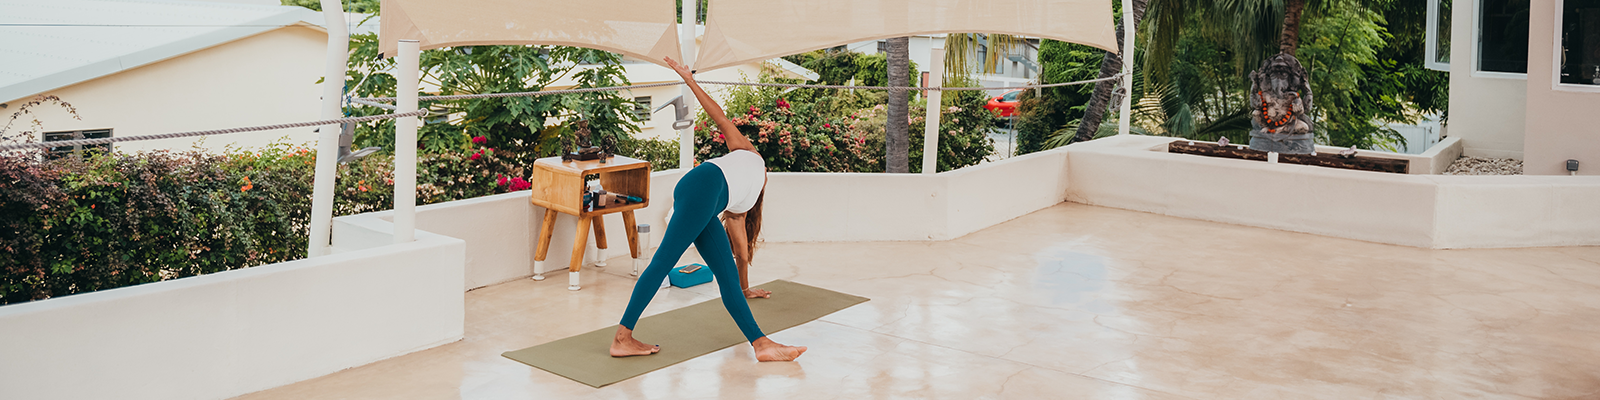 Yoga in mauritius - Yoga classes